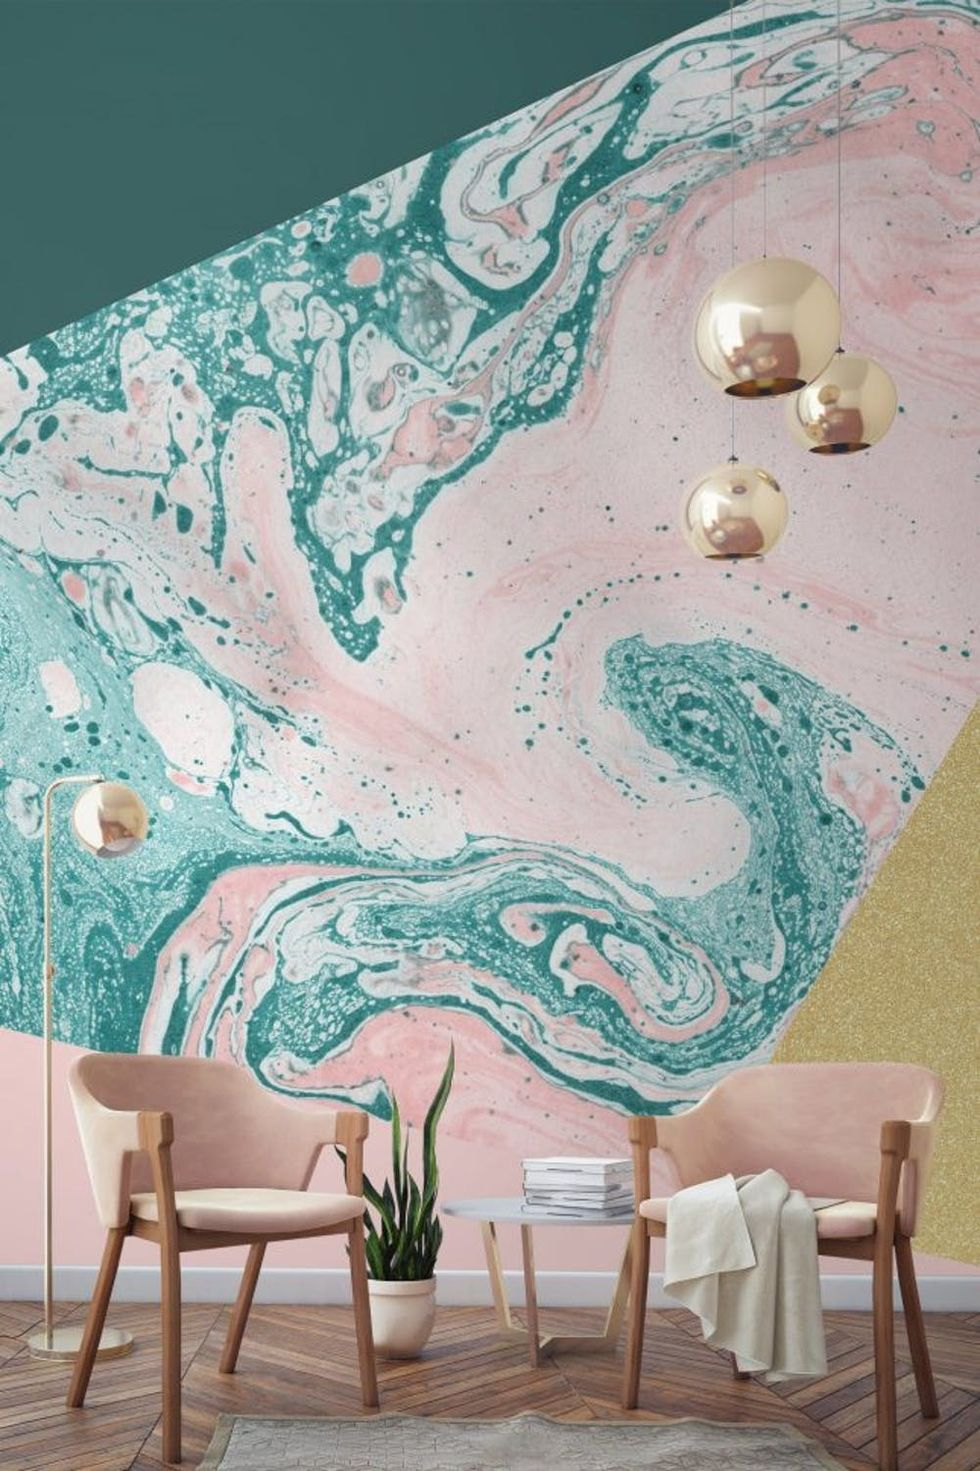 Marble Wallpaper Is The Latest Trend You Ll Want Your Home To Rock